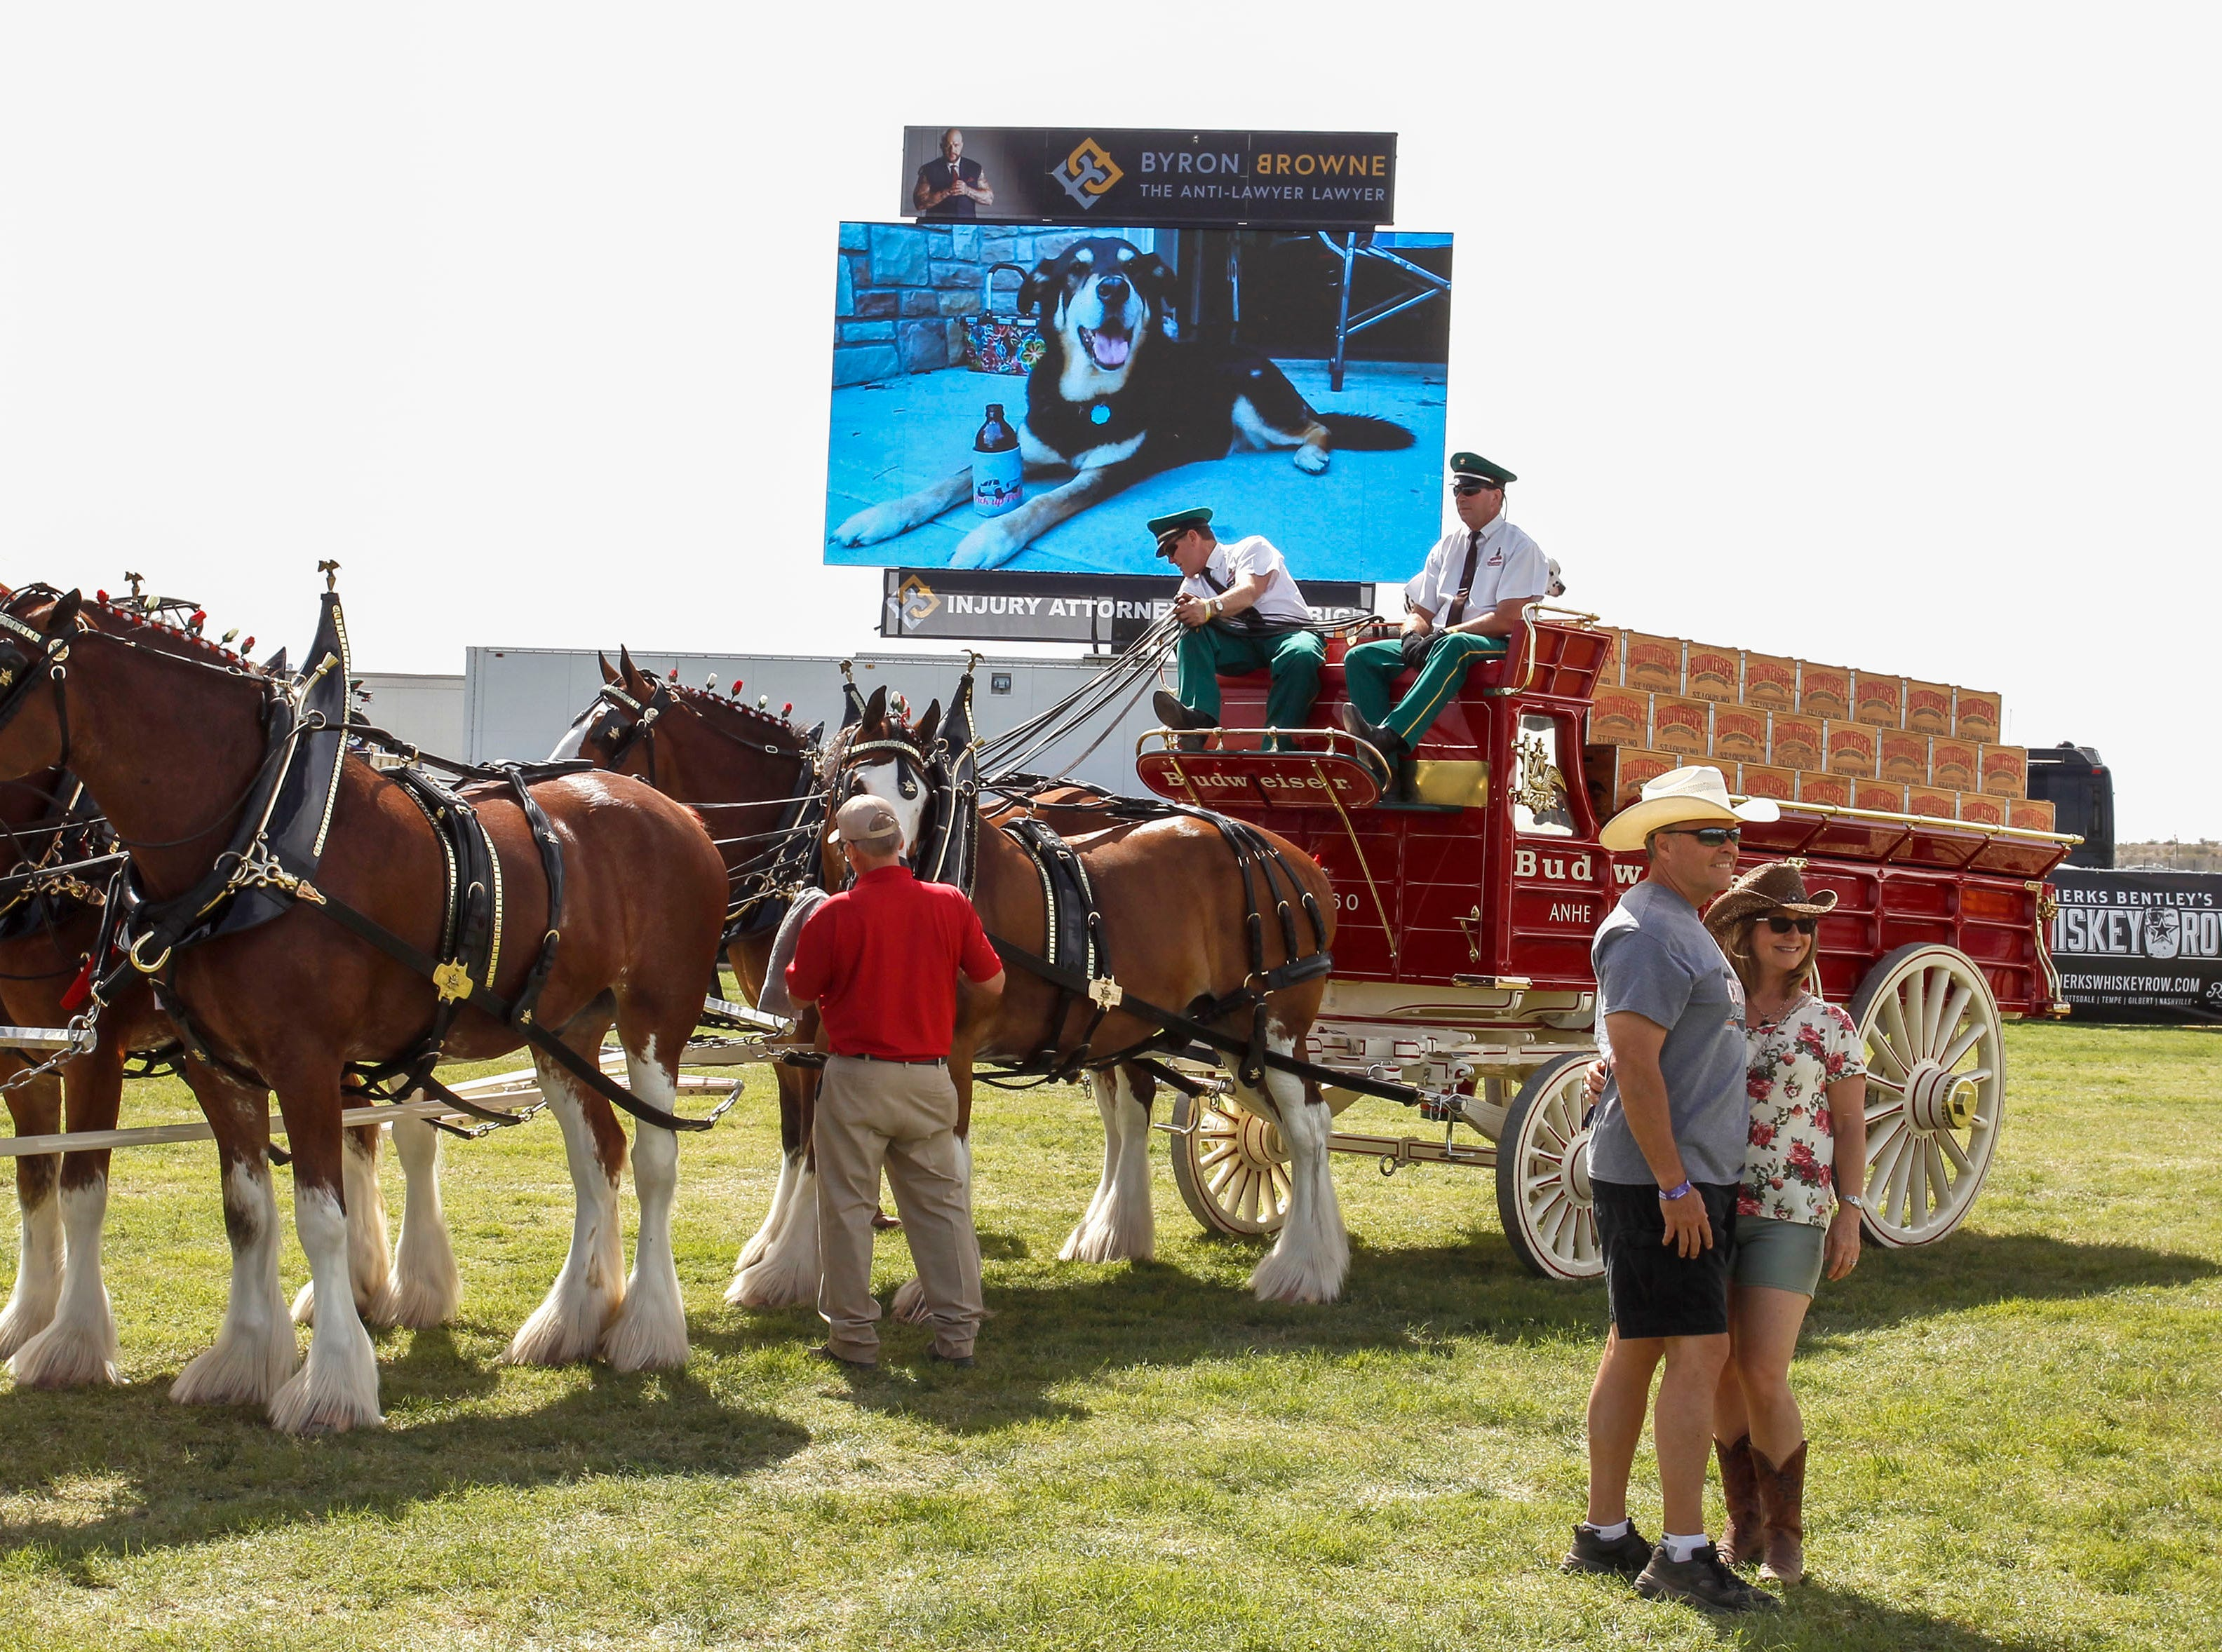 Country Thunder music goers pose in front of the Budweiser Clydesdales during Country Thunder Arizona on April 11, 2019, in Florence.